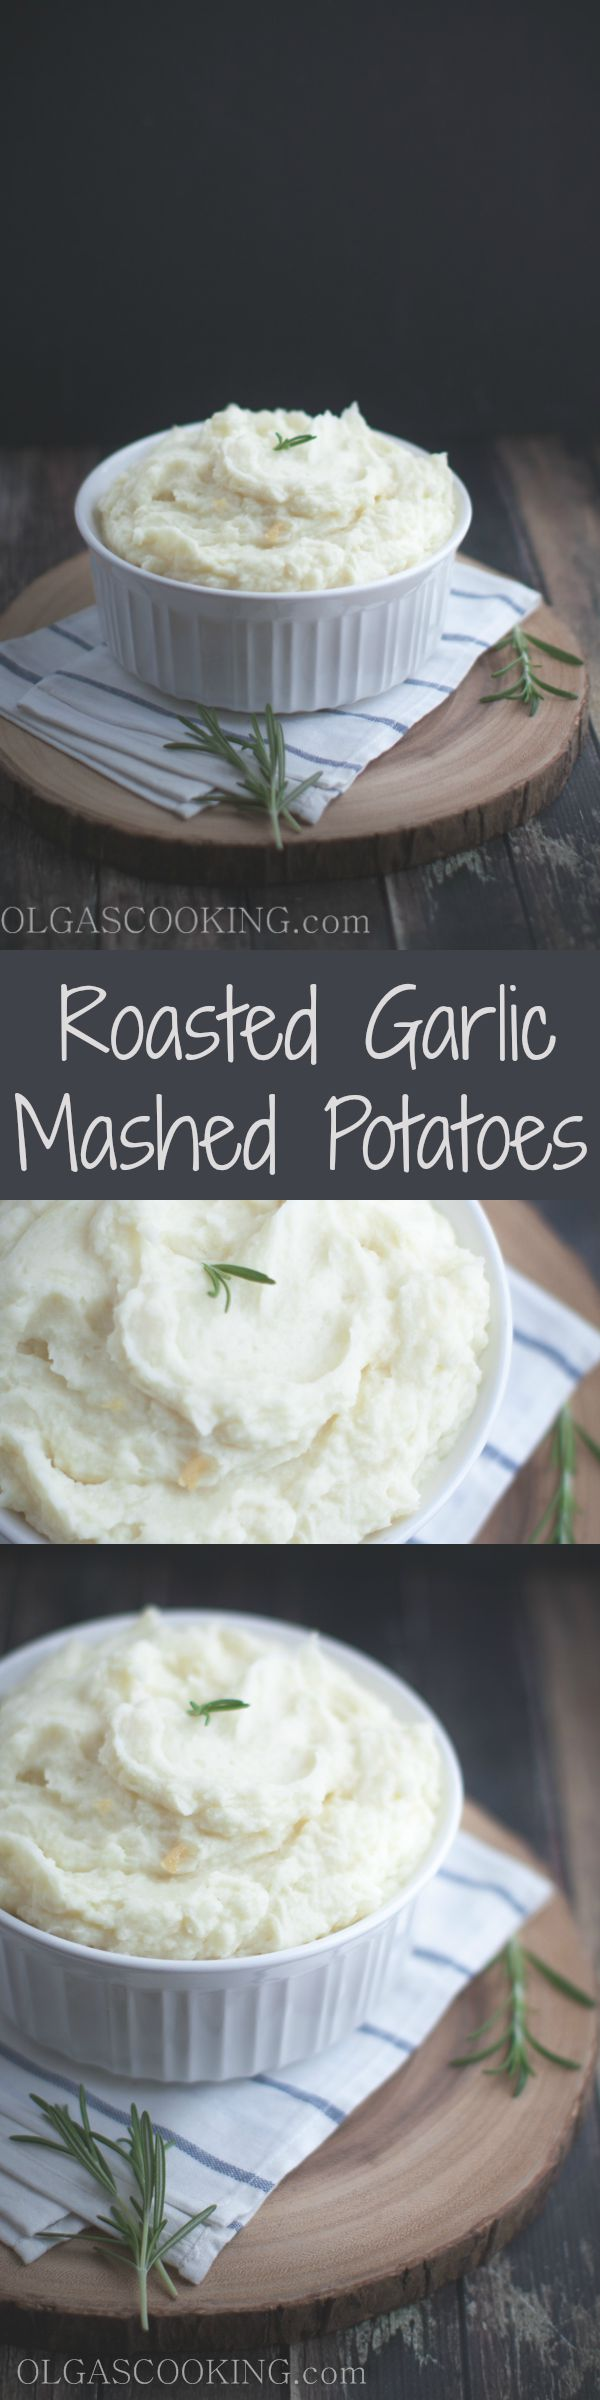 Oh the flavors of this Roasted Garlic Mashed Potatoes are just amazing! Once you try these mashed potatoes, you will never go back to the plain mashed potatoes!!